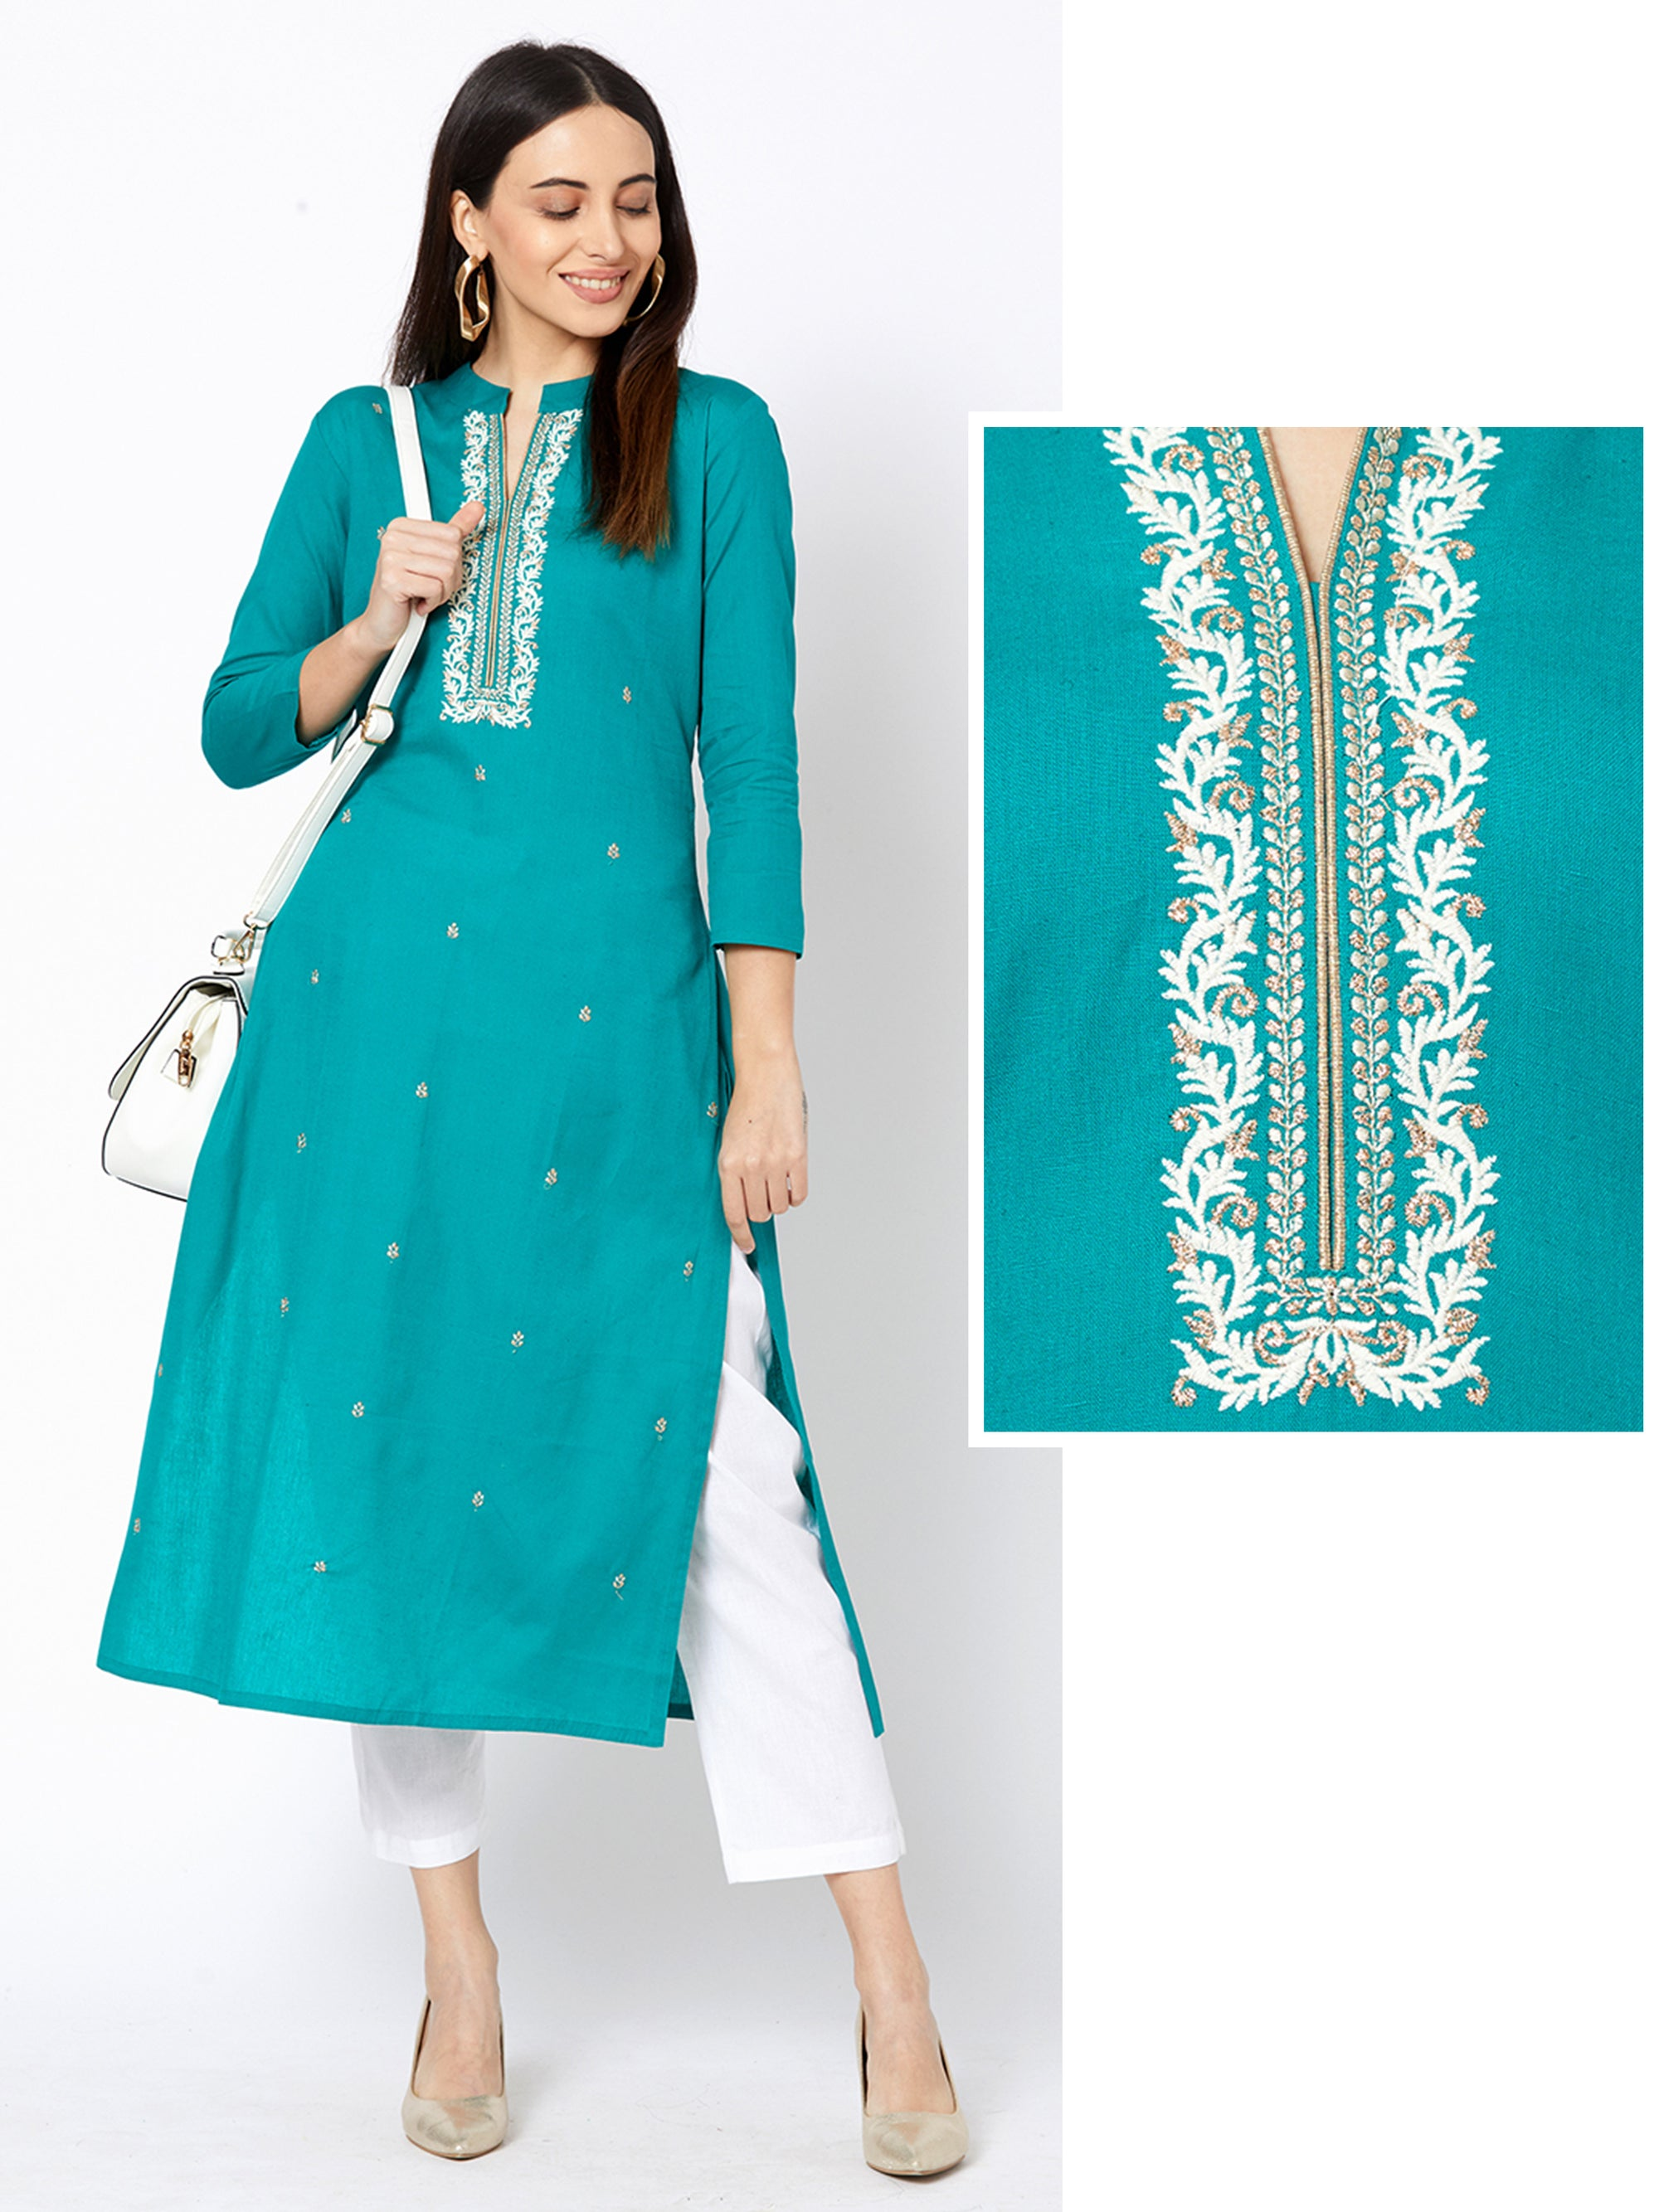 Minimal Floral Embroidered Cotton Kurta – Teal Blue